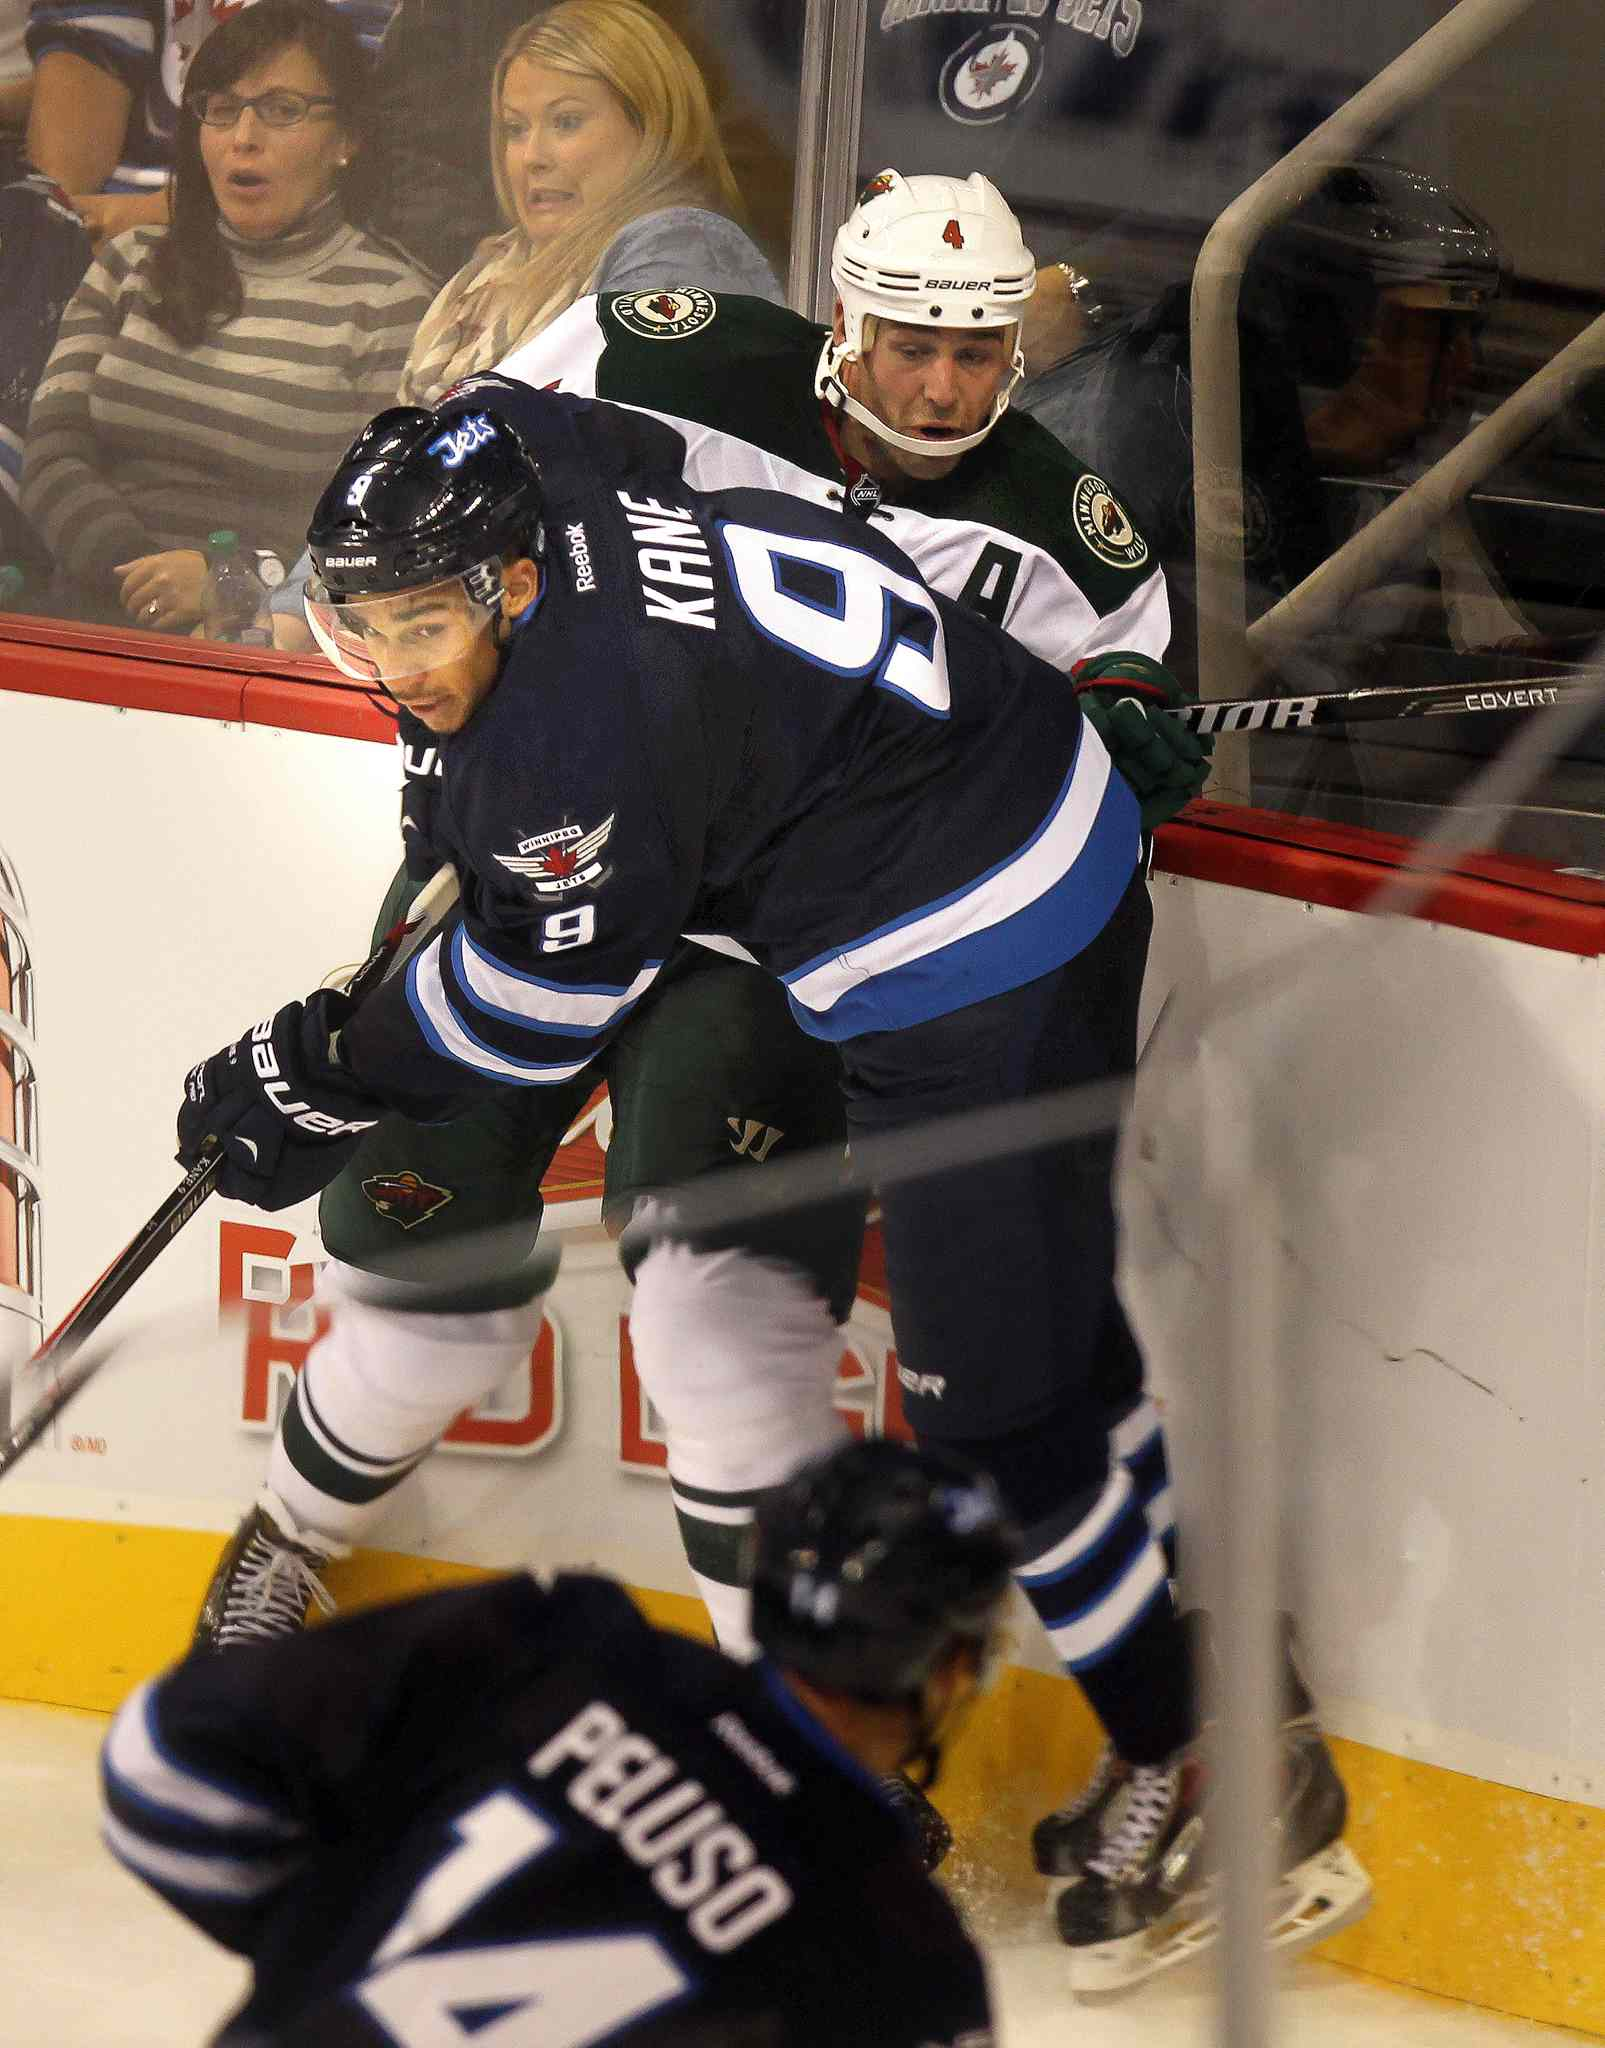 Evander Kane takes out Clayton Stoner of the Minnesota Wild in the third period.